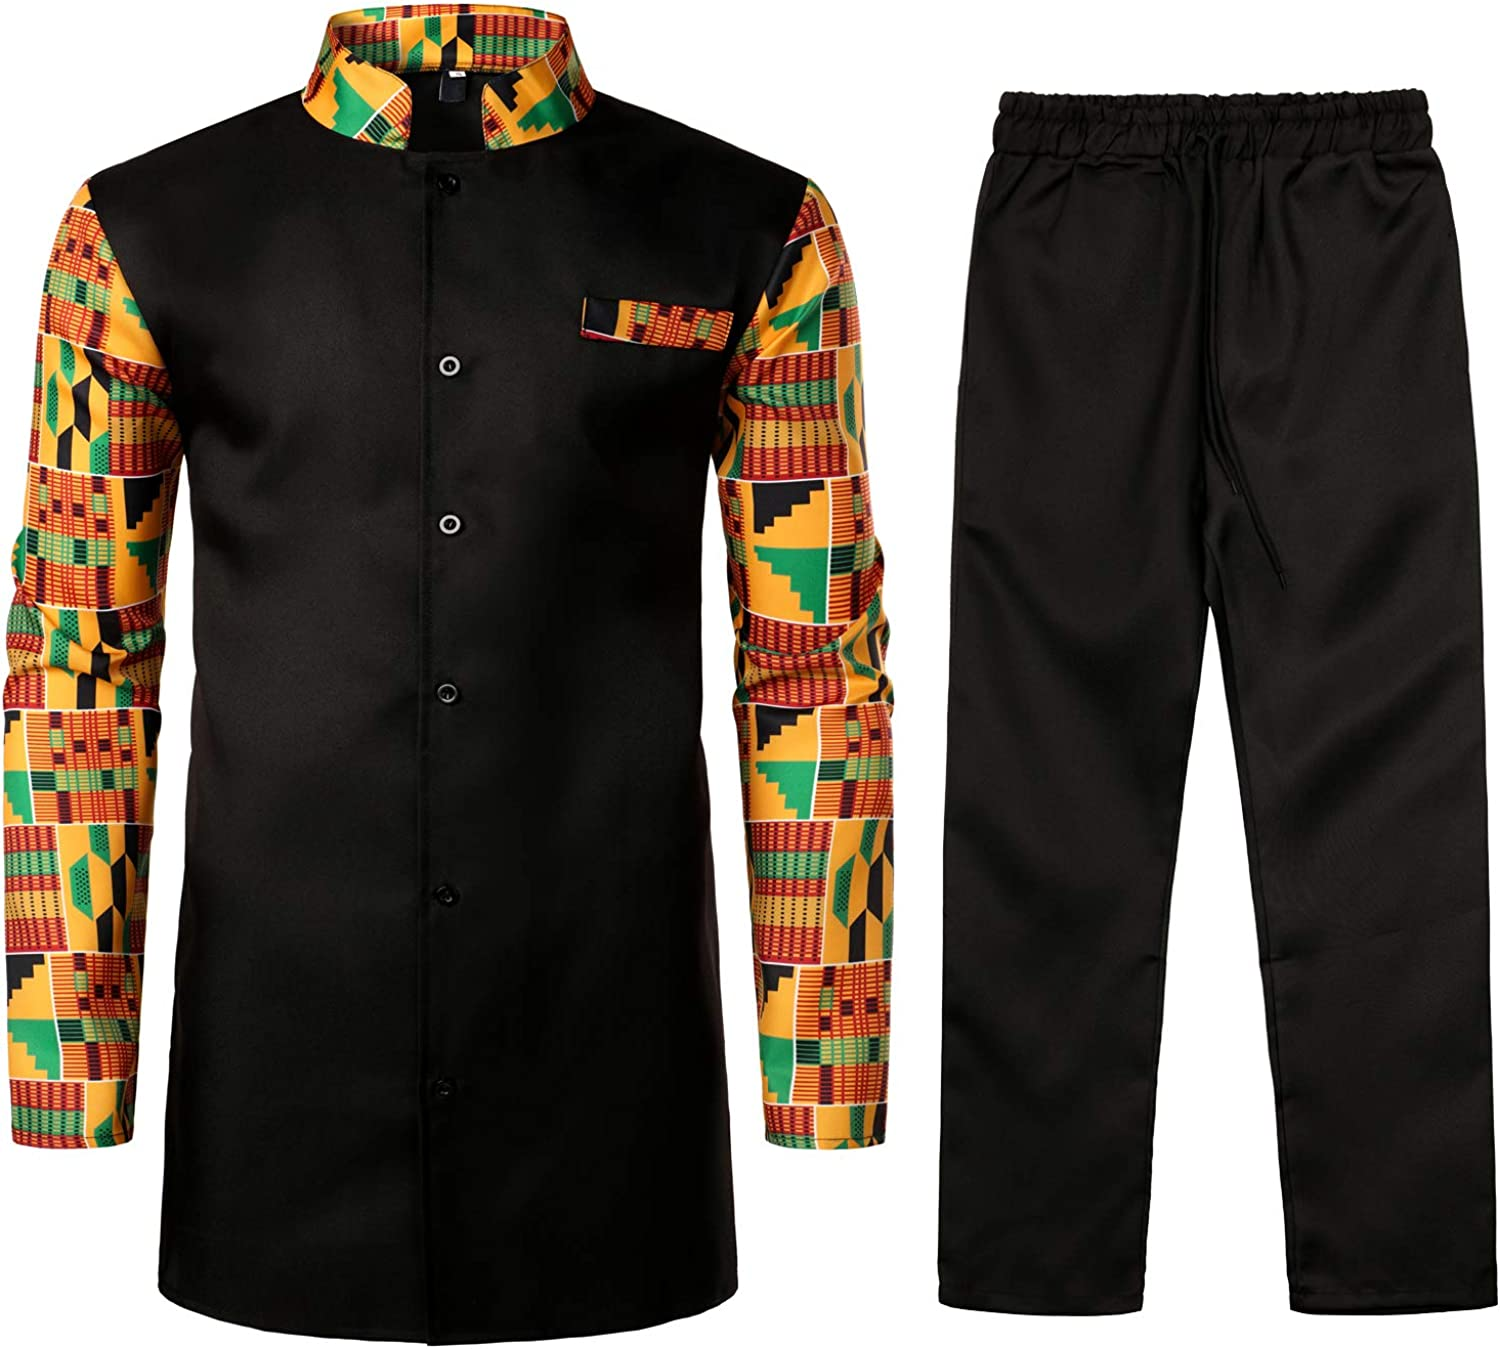 Large-scale sale Attention brand LucMatton Men's African 2 Piece Set Tops a Button up Sleeve Long